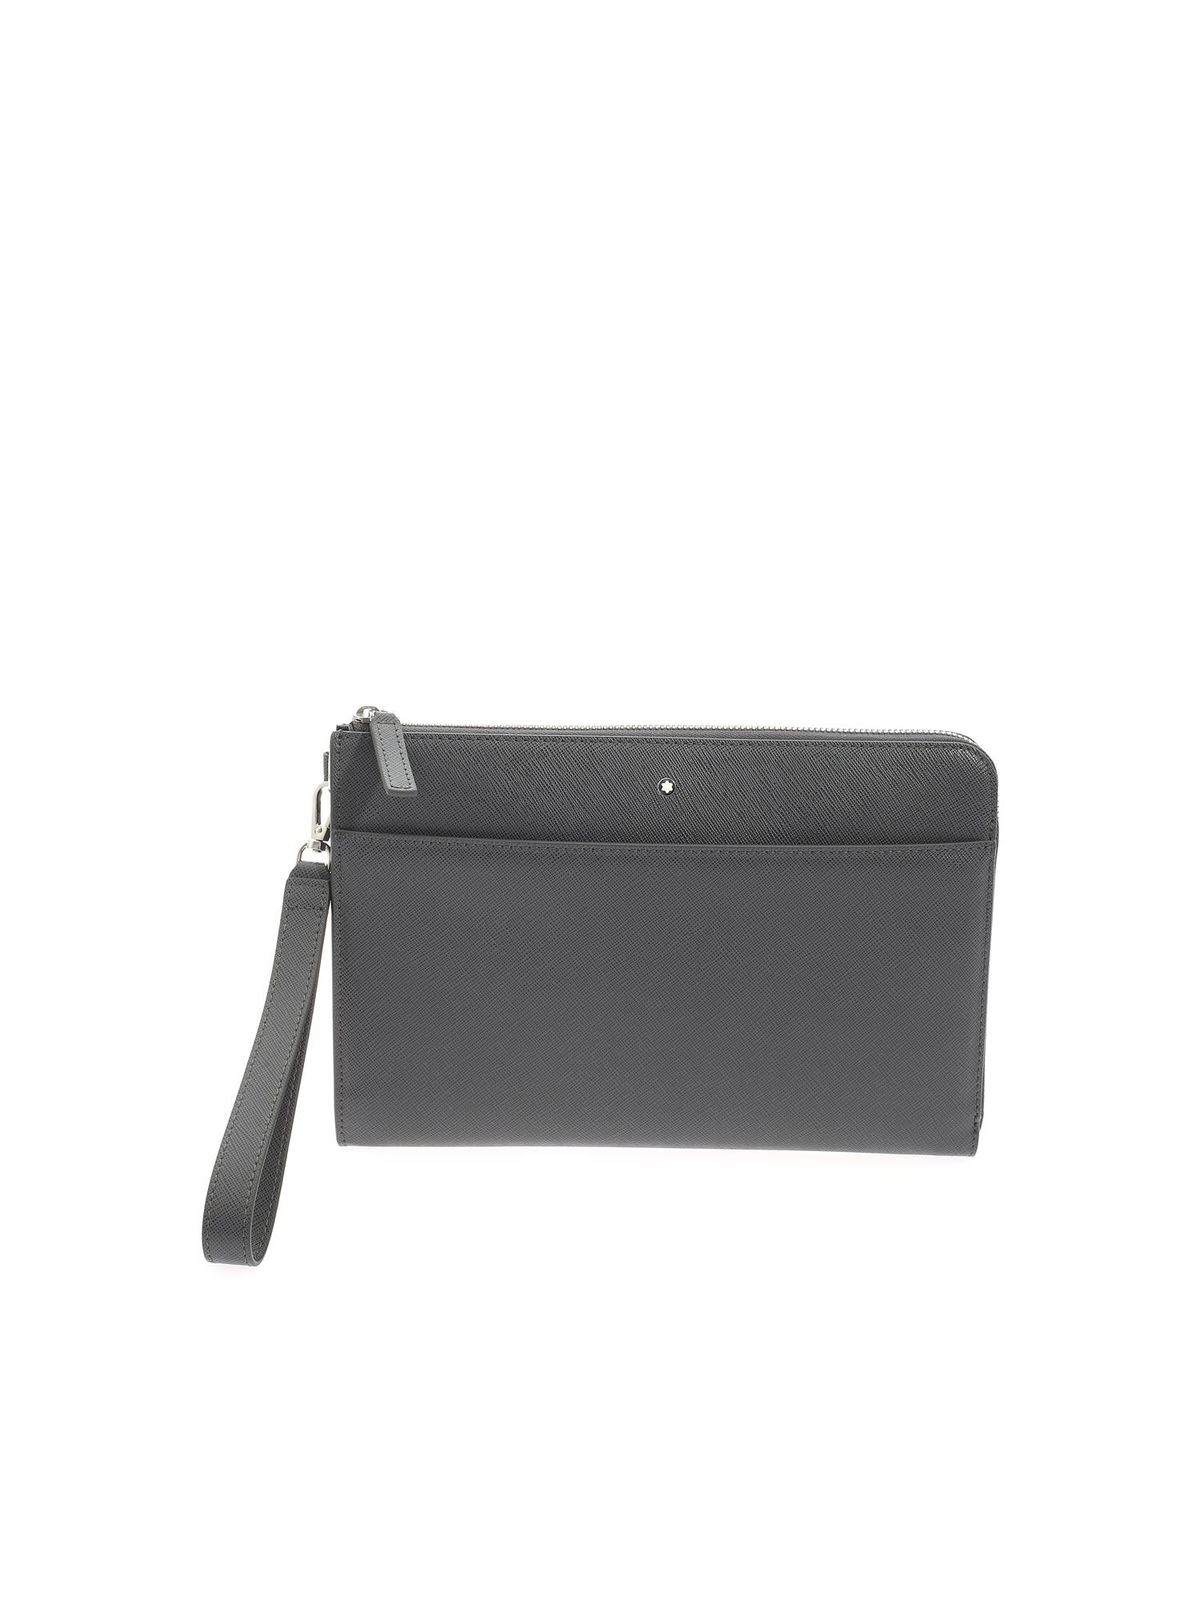 Montblanc EXTERIOR PATCH POCKET CLUTCH BAG IN GREY